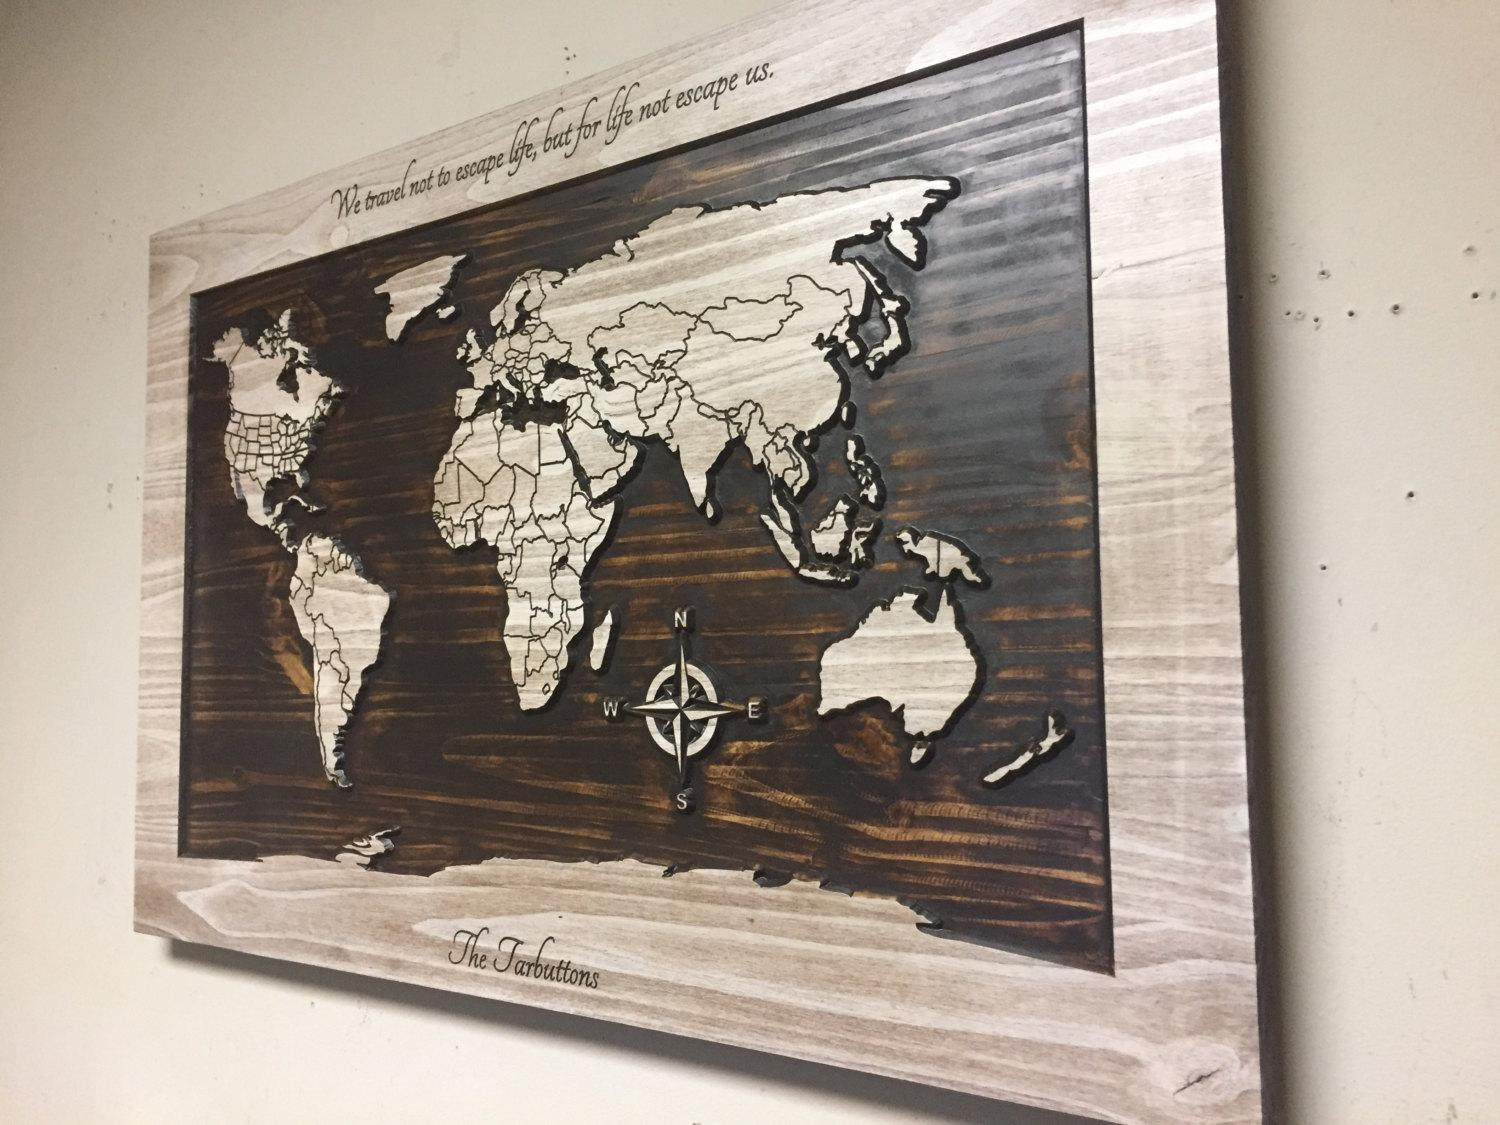 Wood Wall Art World Map Wall Art Carved Wooden World Map Regarding World Map Wood Wall Art (Image 12 of 20)